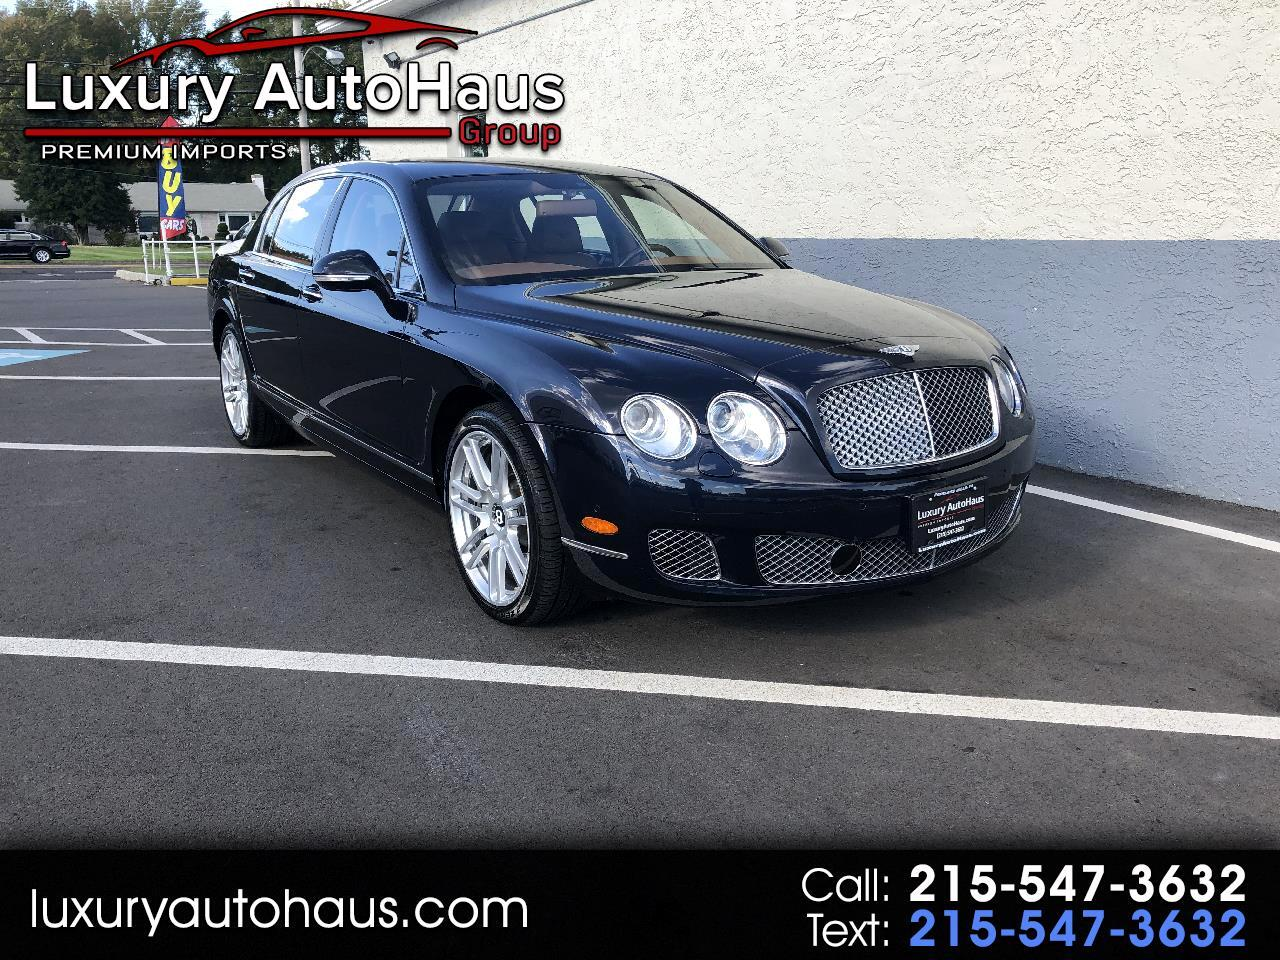 Bentley Continental Flying Spur 4dr Sdn 2012